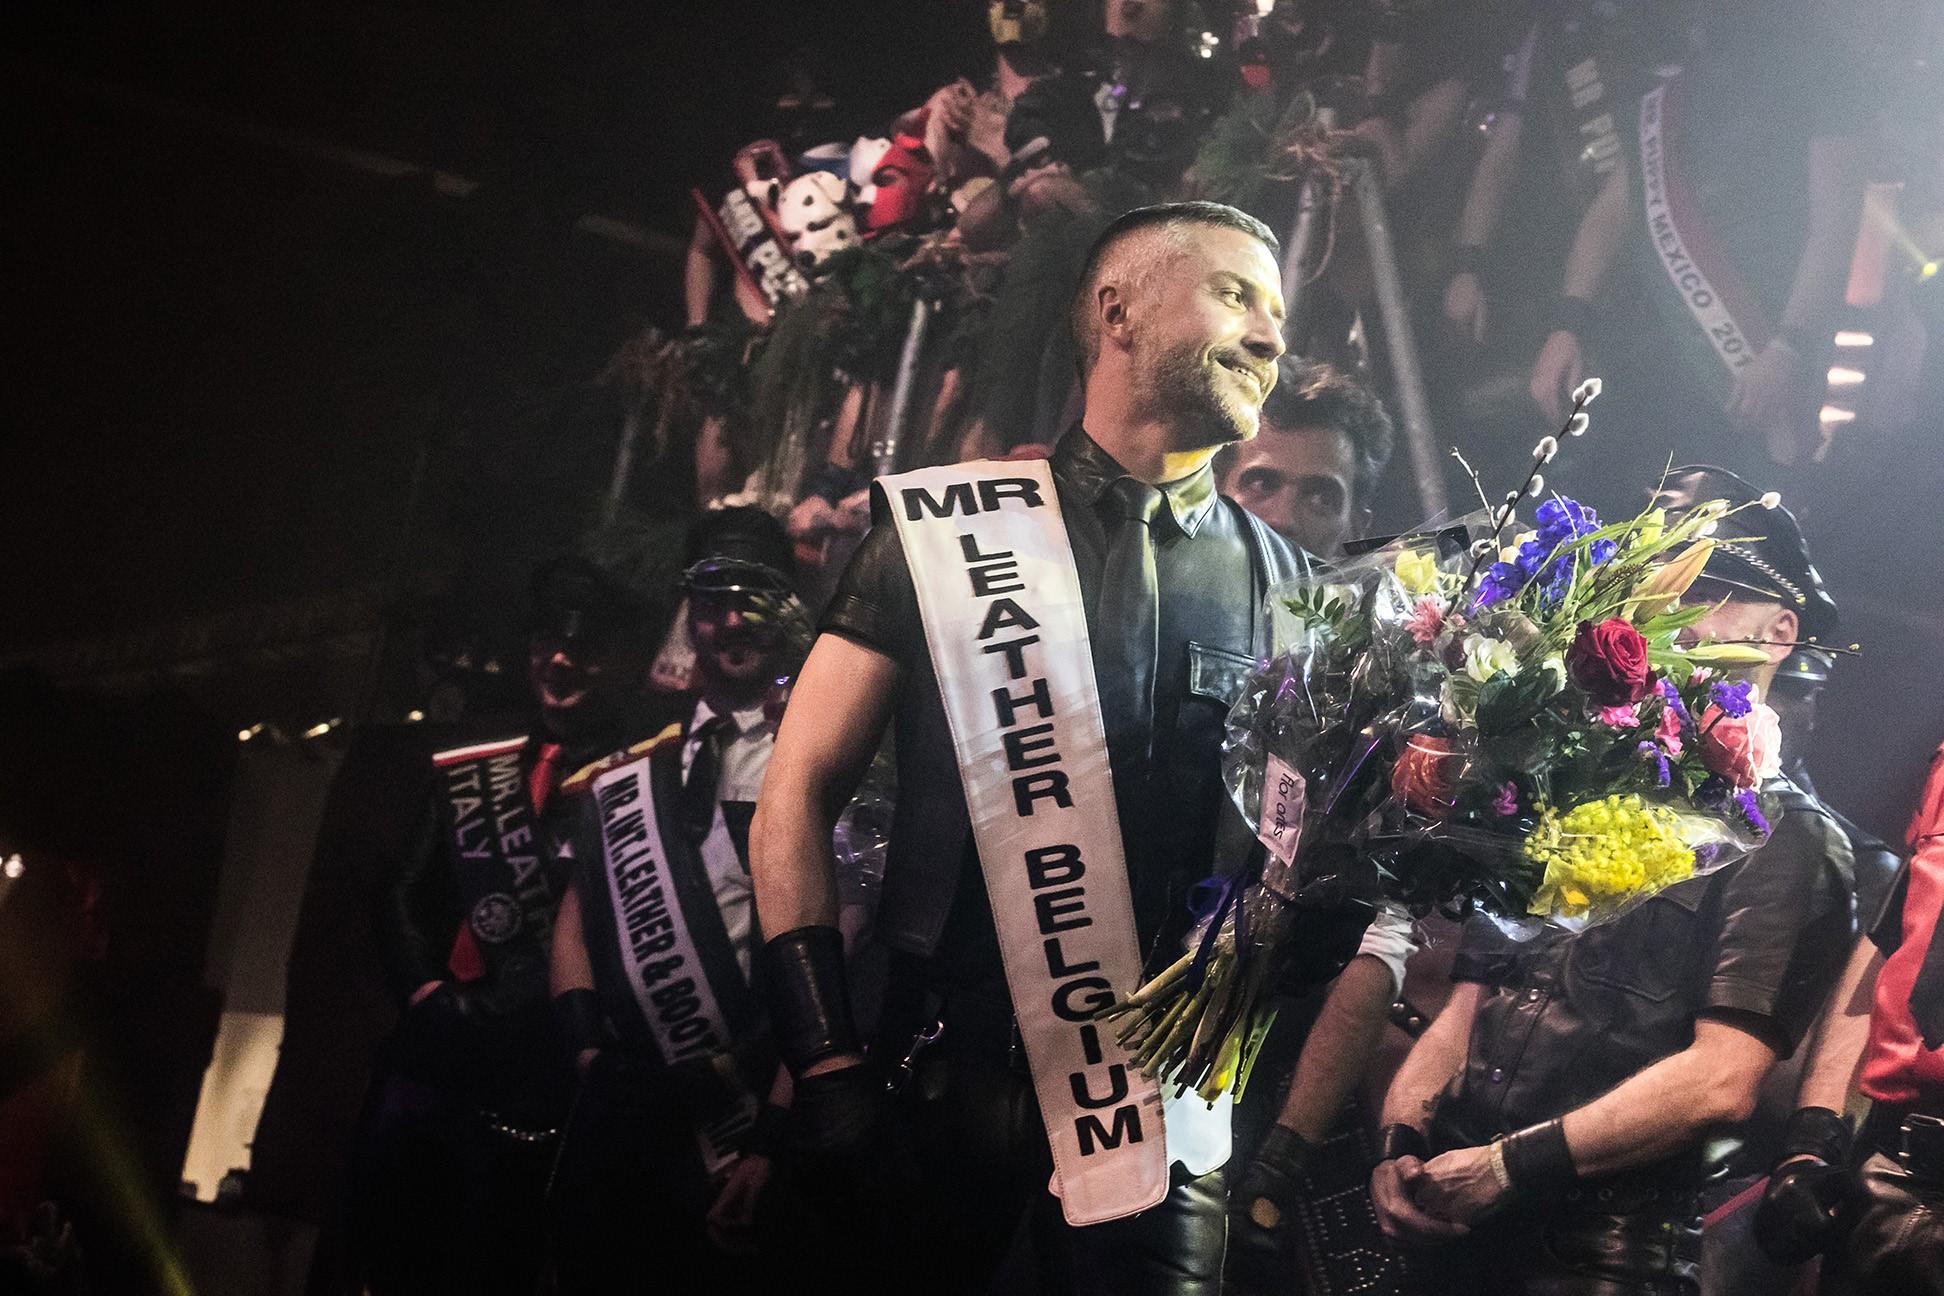 Bernard is mister Leather Belgium 2019 - During the Belgian Leather & Fetish pride in Antwerp, the next mister Leather Belgium was elected!We are very proud to introduce to you Bernard!